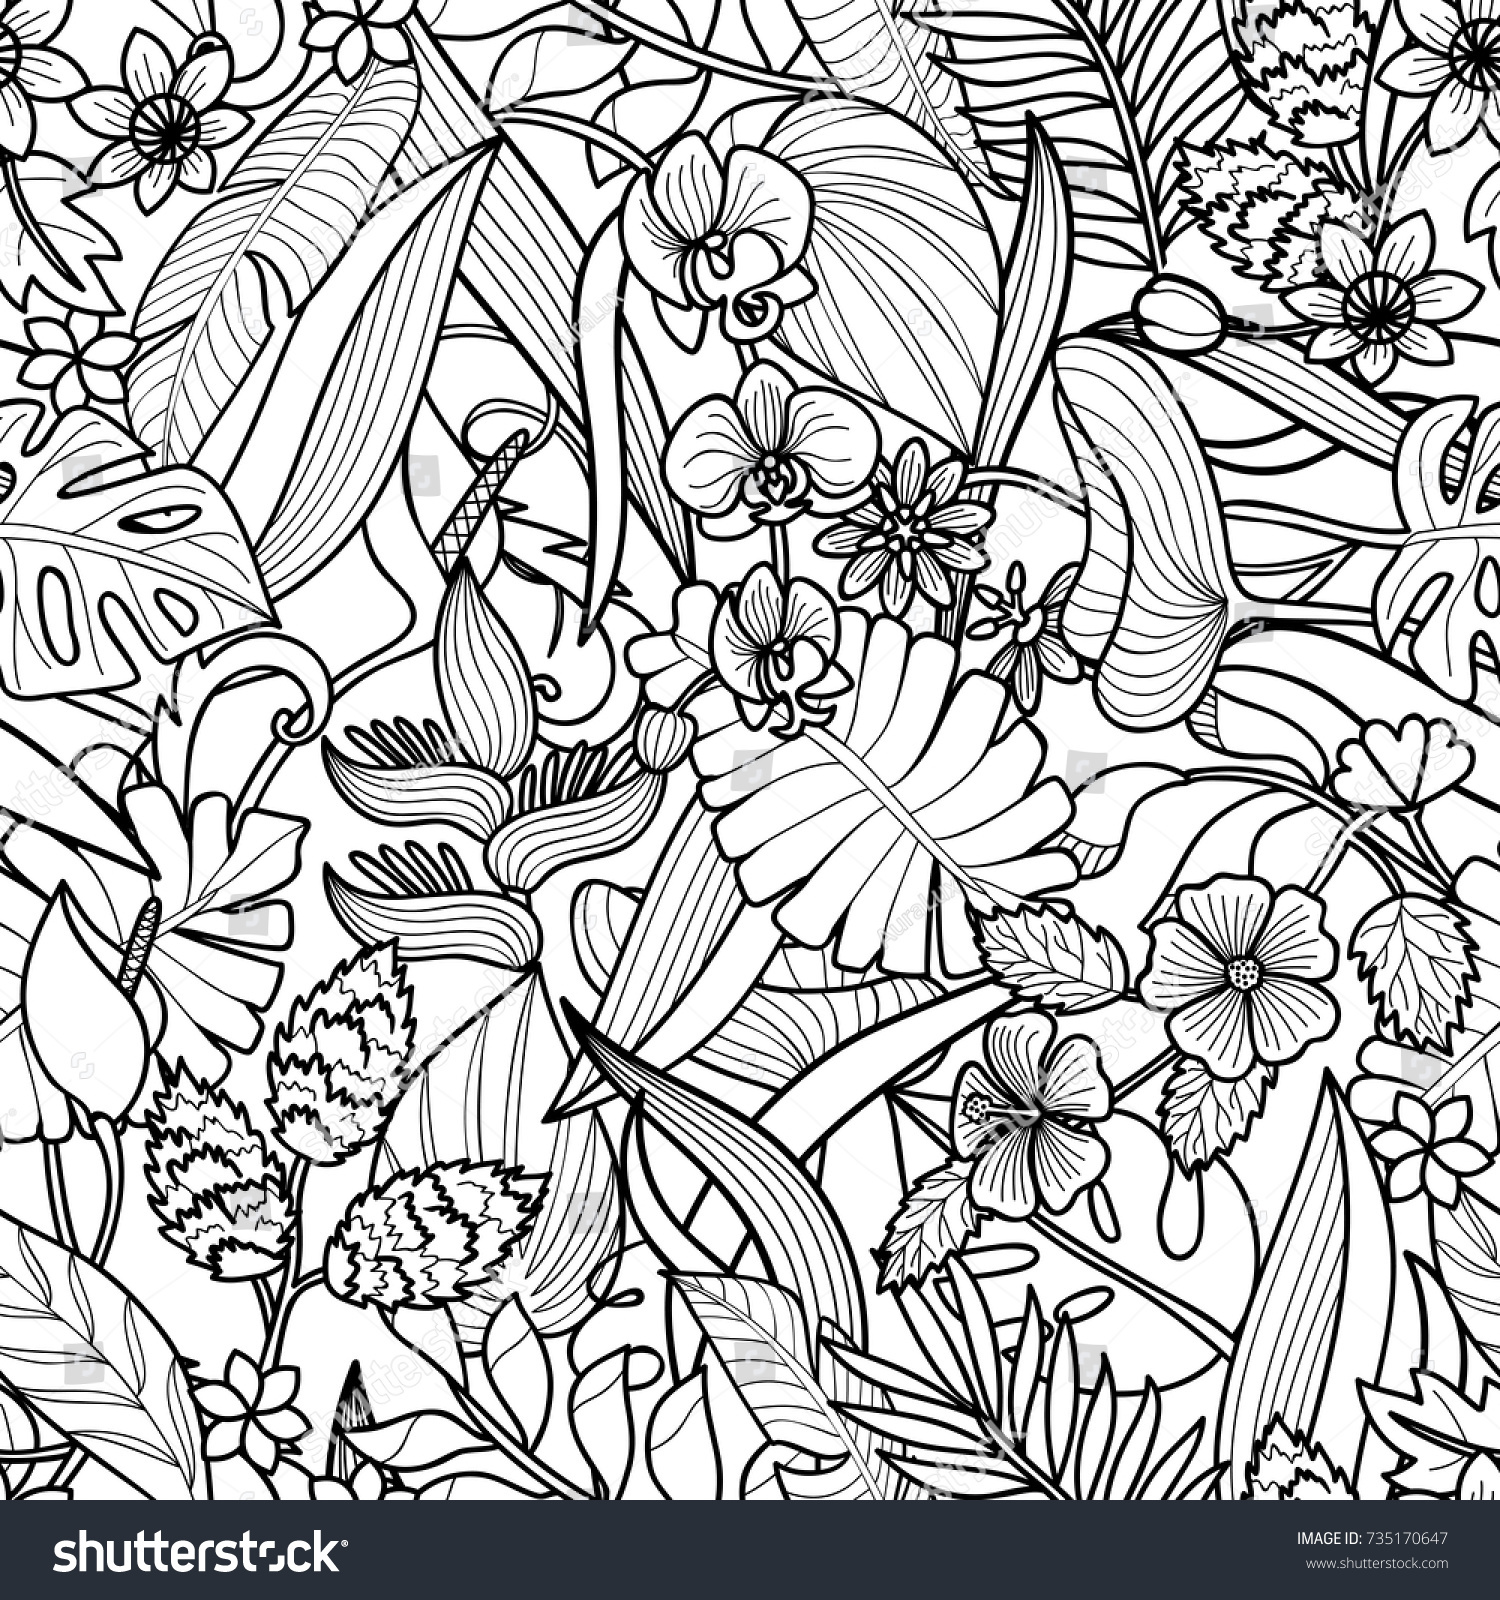 Tropical Flowers Plants Seamless Pattern Floral Stock Vector ...